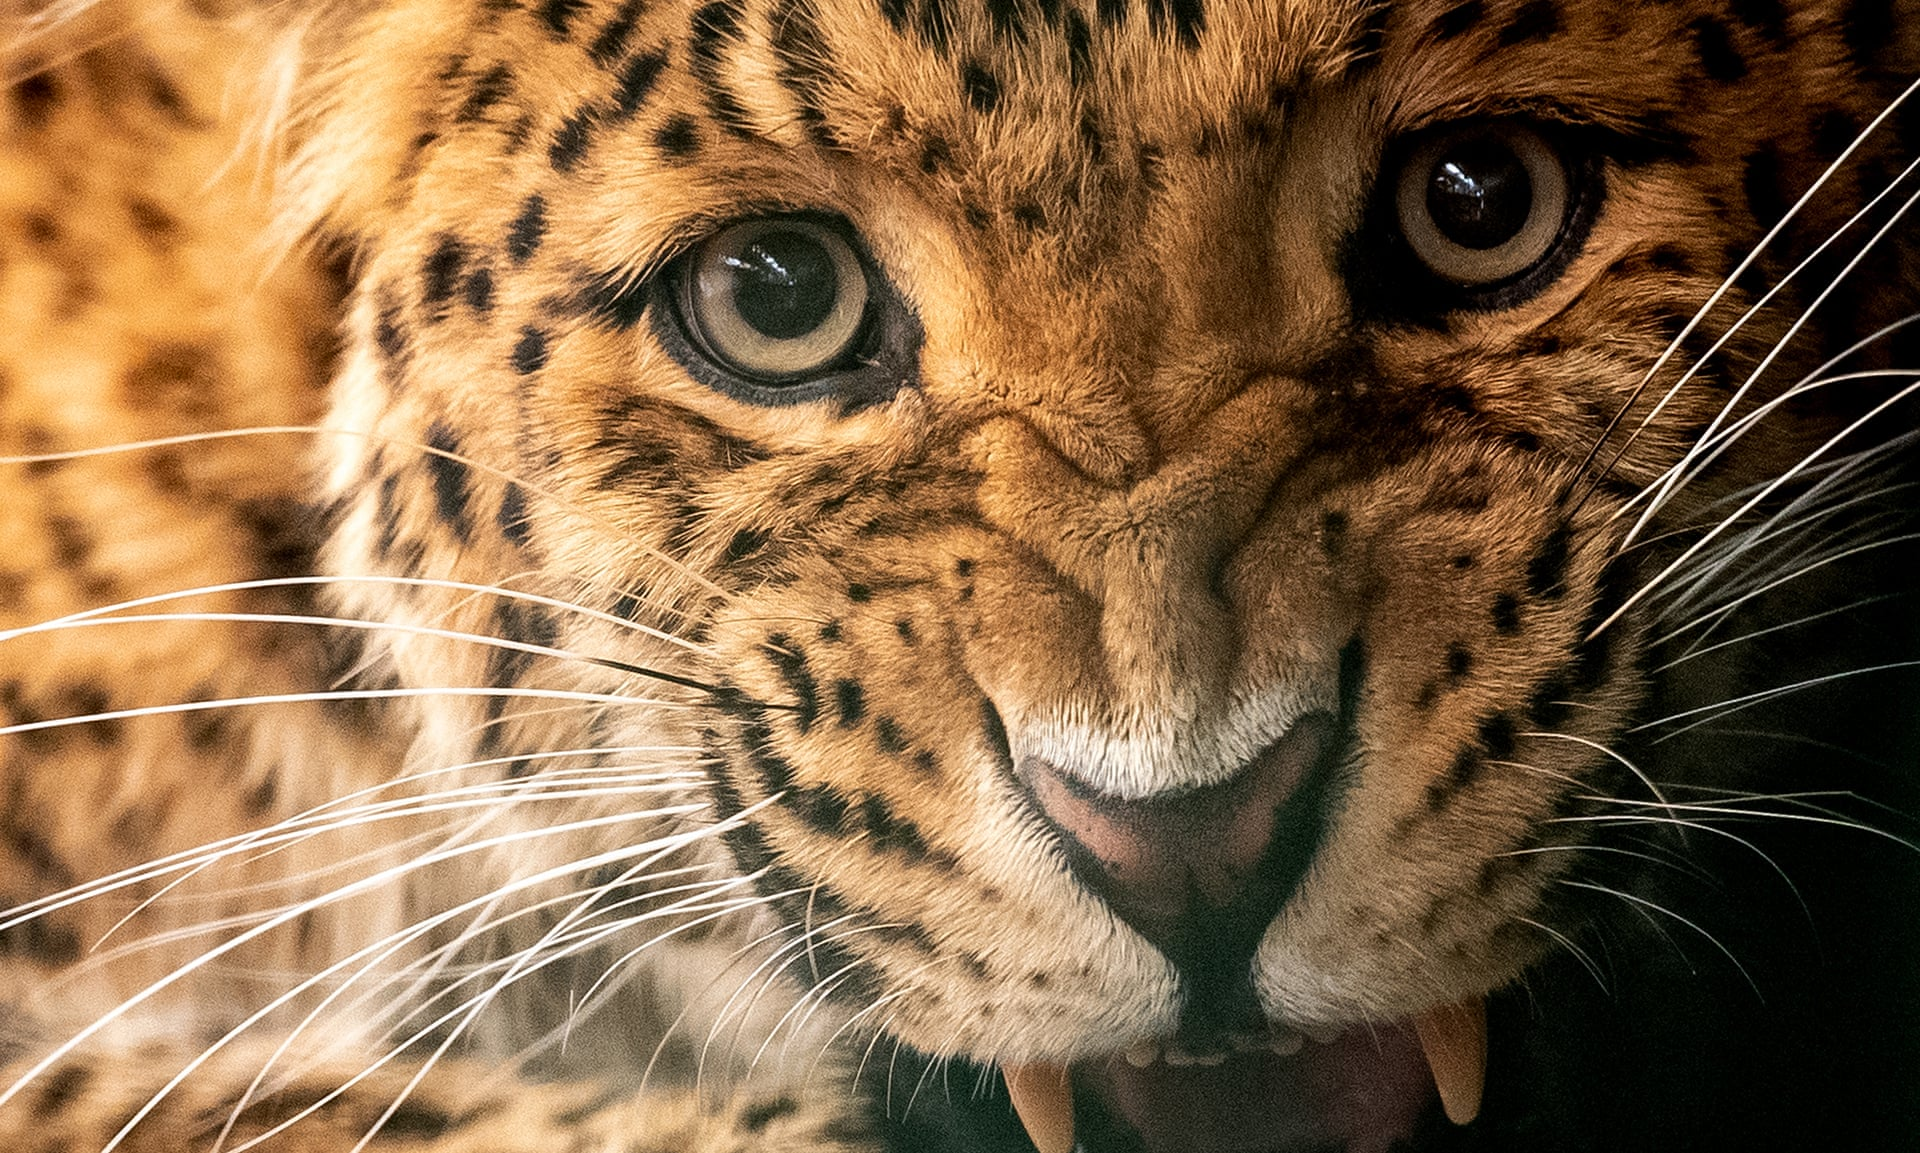 Wildlife traffickers goal lion, jaguar and leopard physique elements as tiger substitutes  Wildlife traffickers goal lion, jaguar and leopard physique elements as tiger substitutes 3000